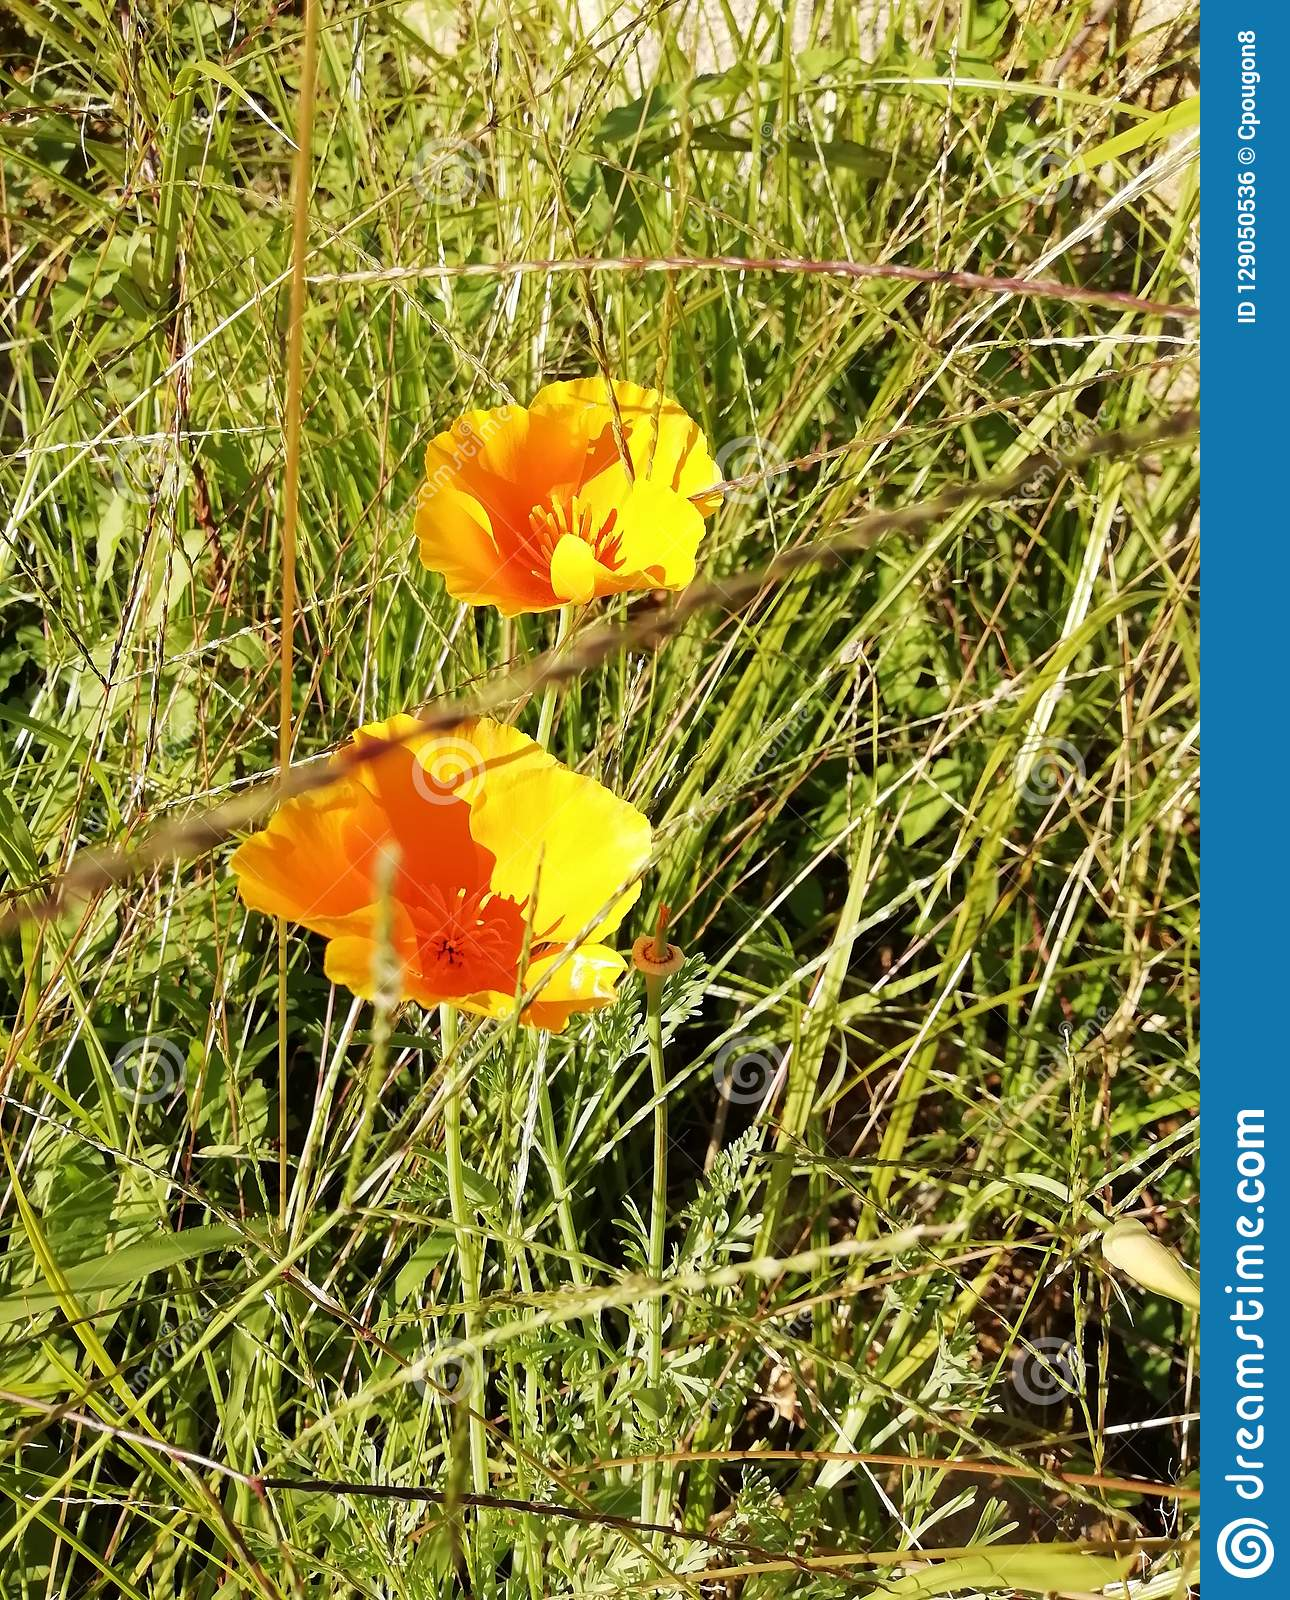 Flowers of yellow poppies